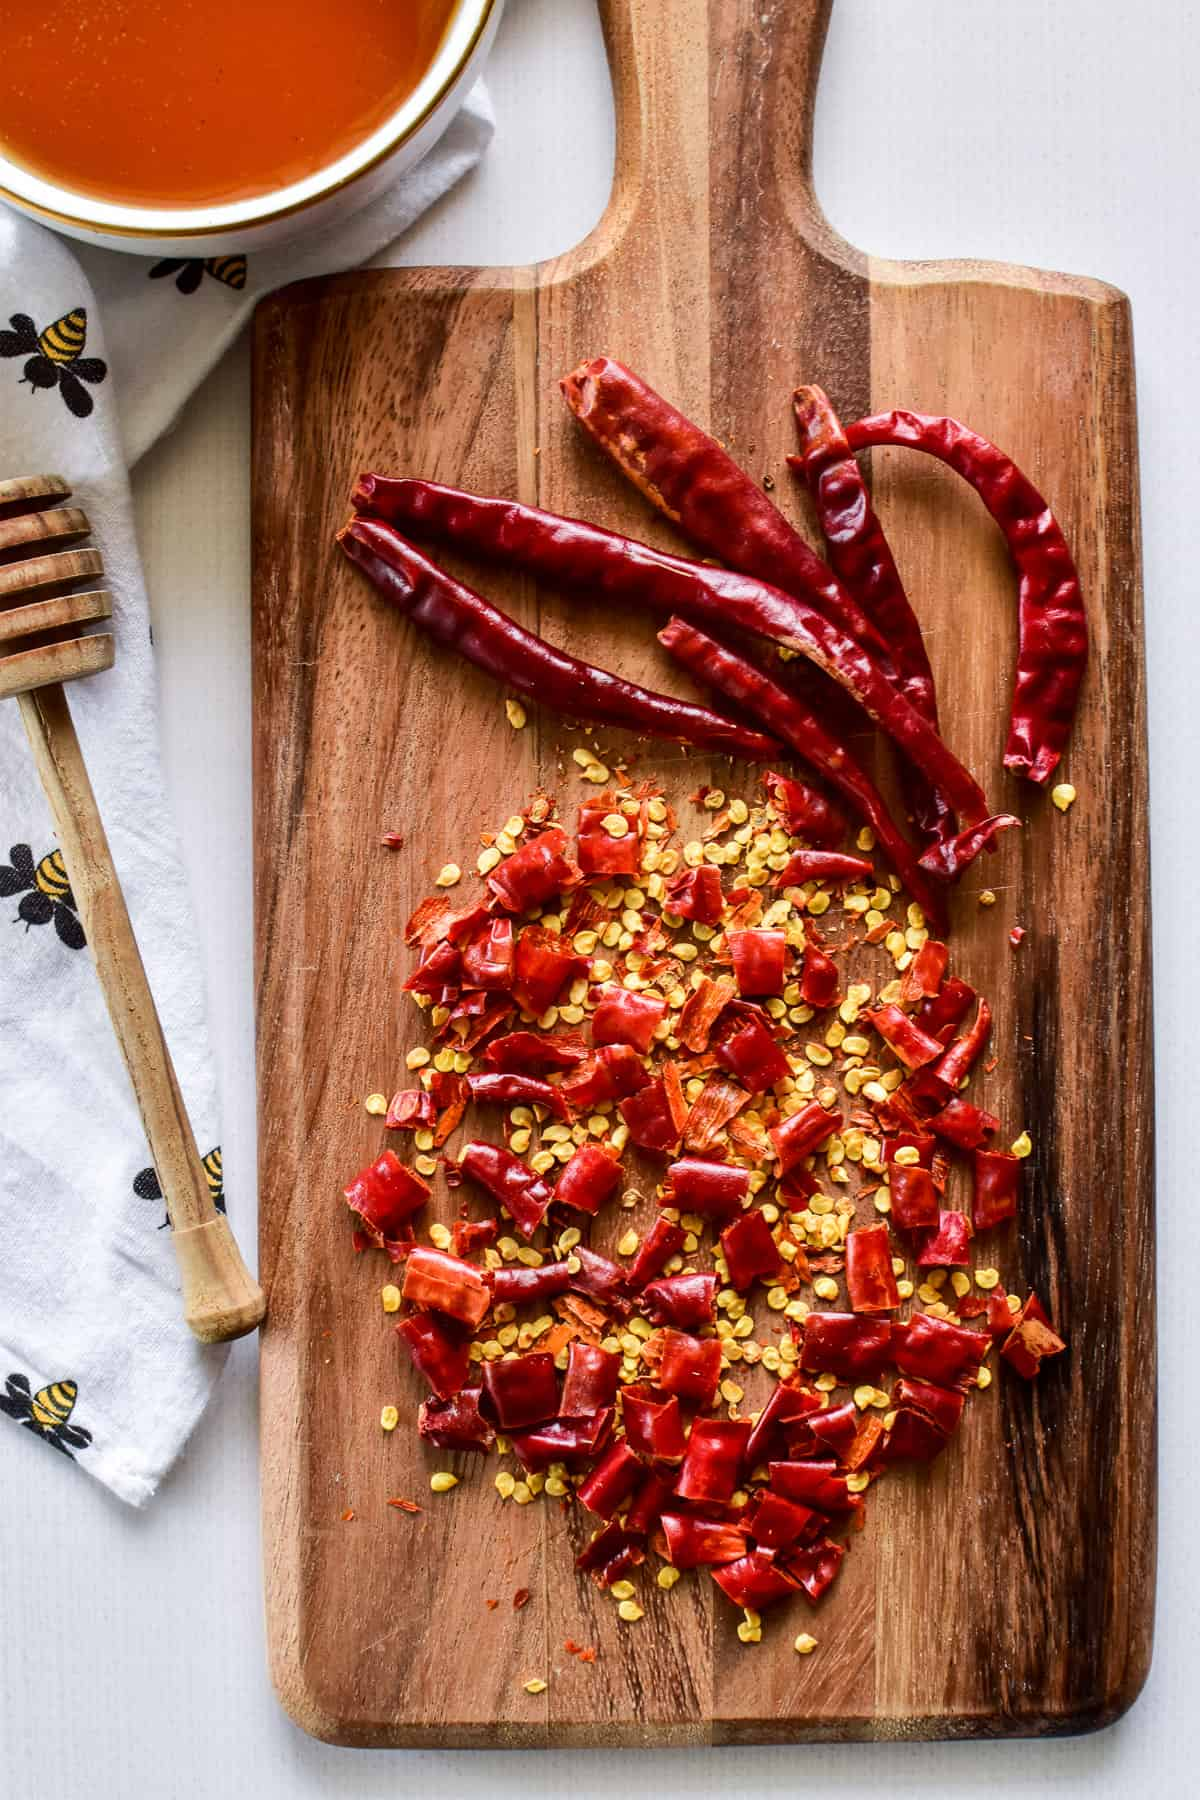 Chopped chili peppers on a wooden cutting board